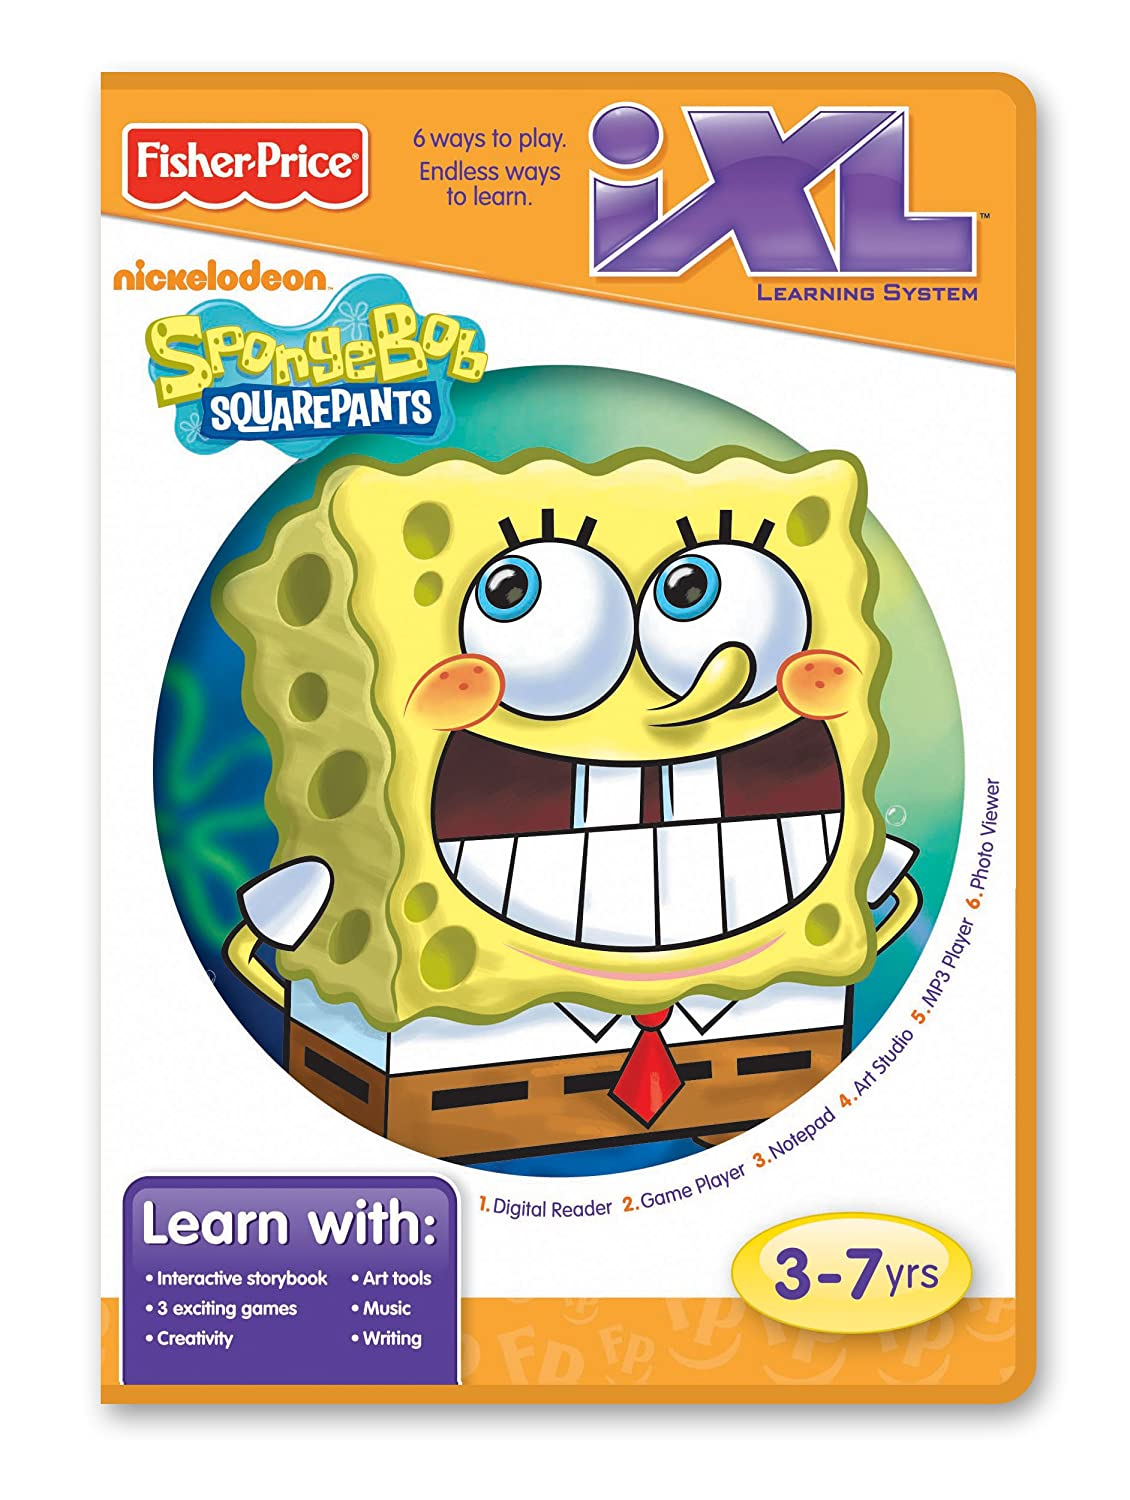 Amazon.com: Nickelodeon Fisher-Price iXL Learning System Software ...